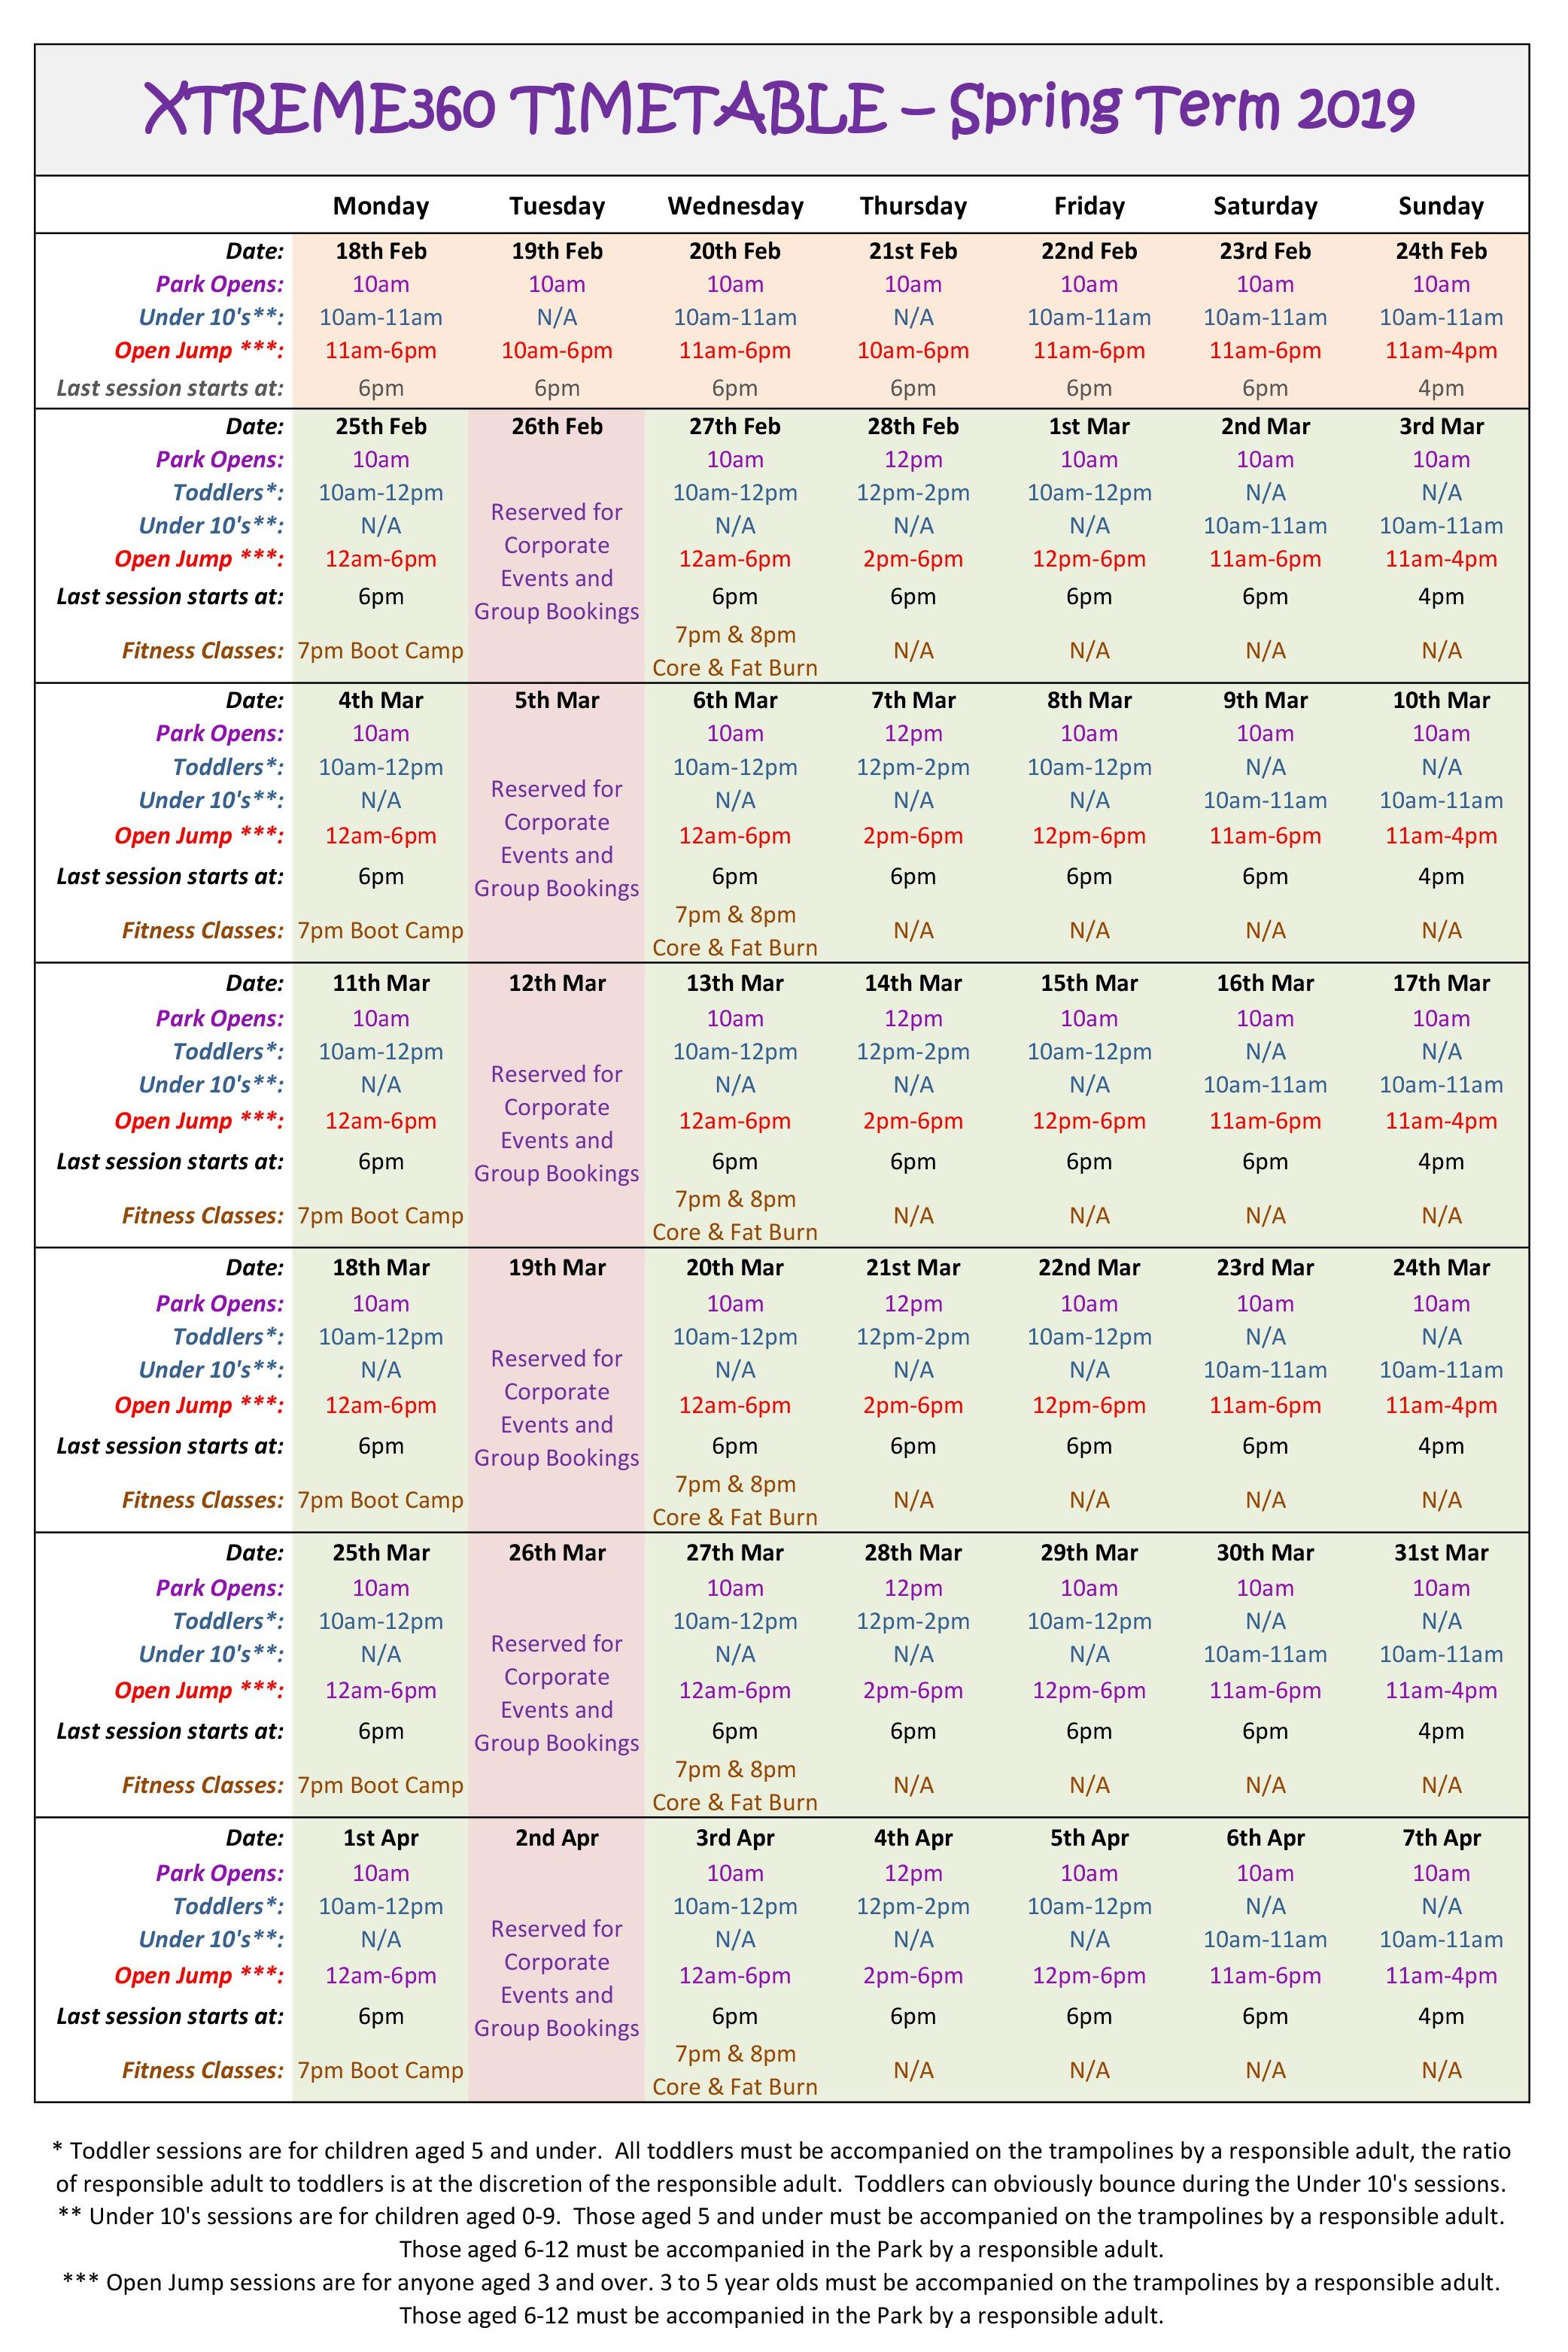 Xtreme360 Timetable Spring Term 2019 Second Half